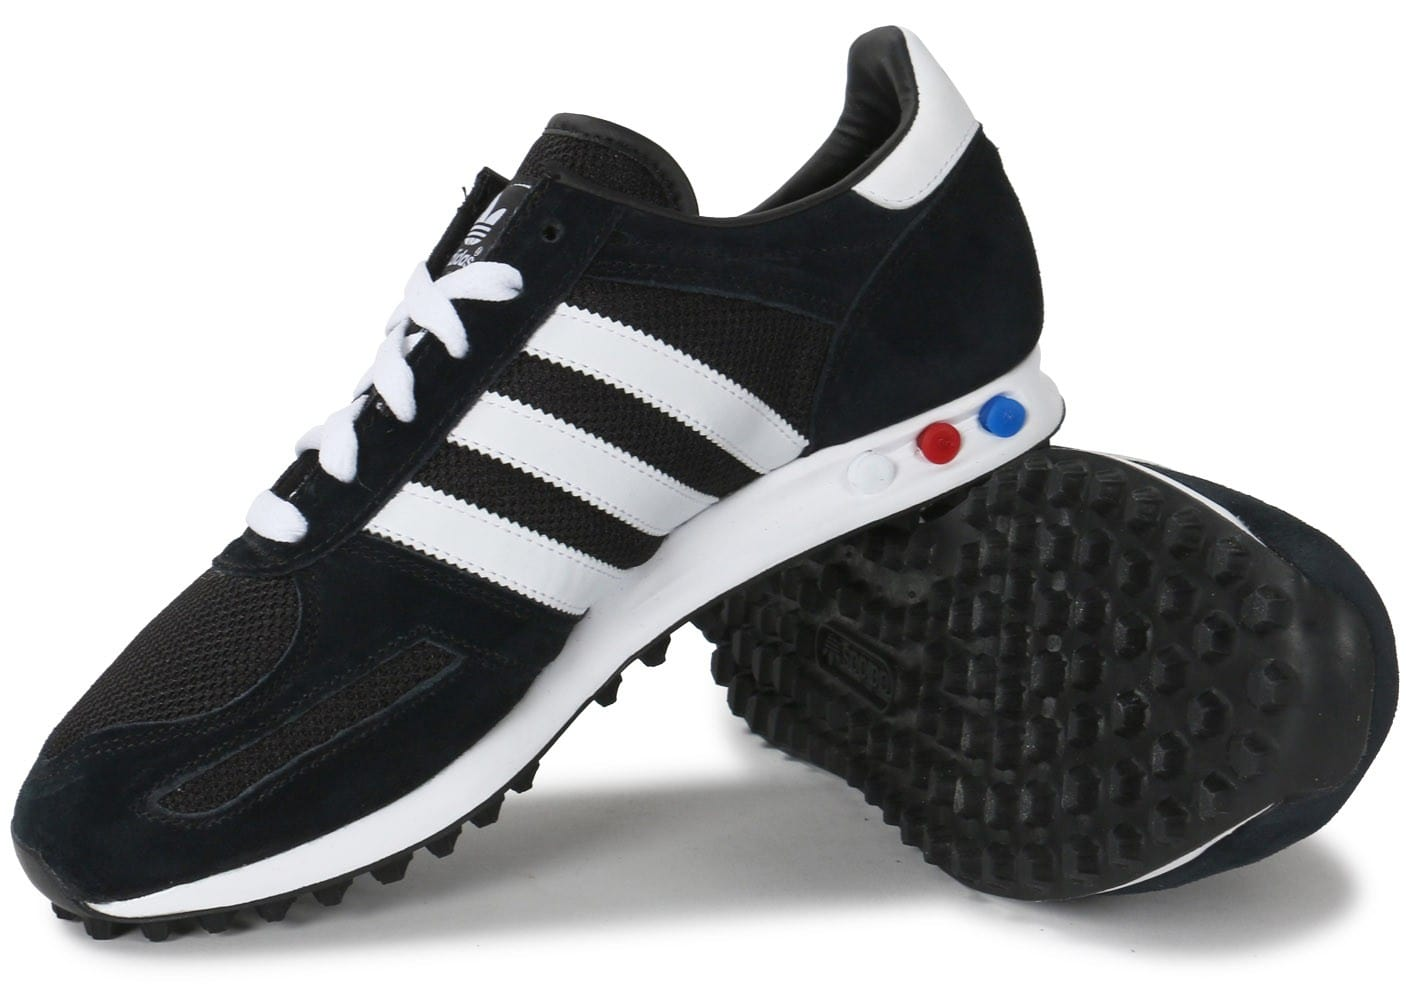 Adidas La Trainer chaussures